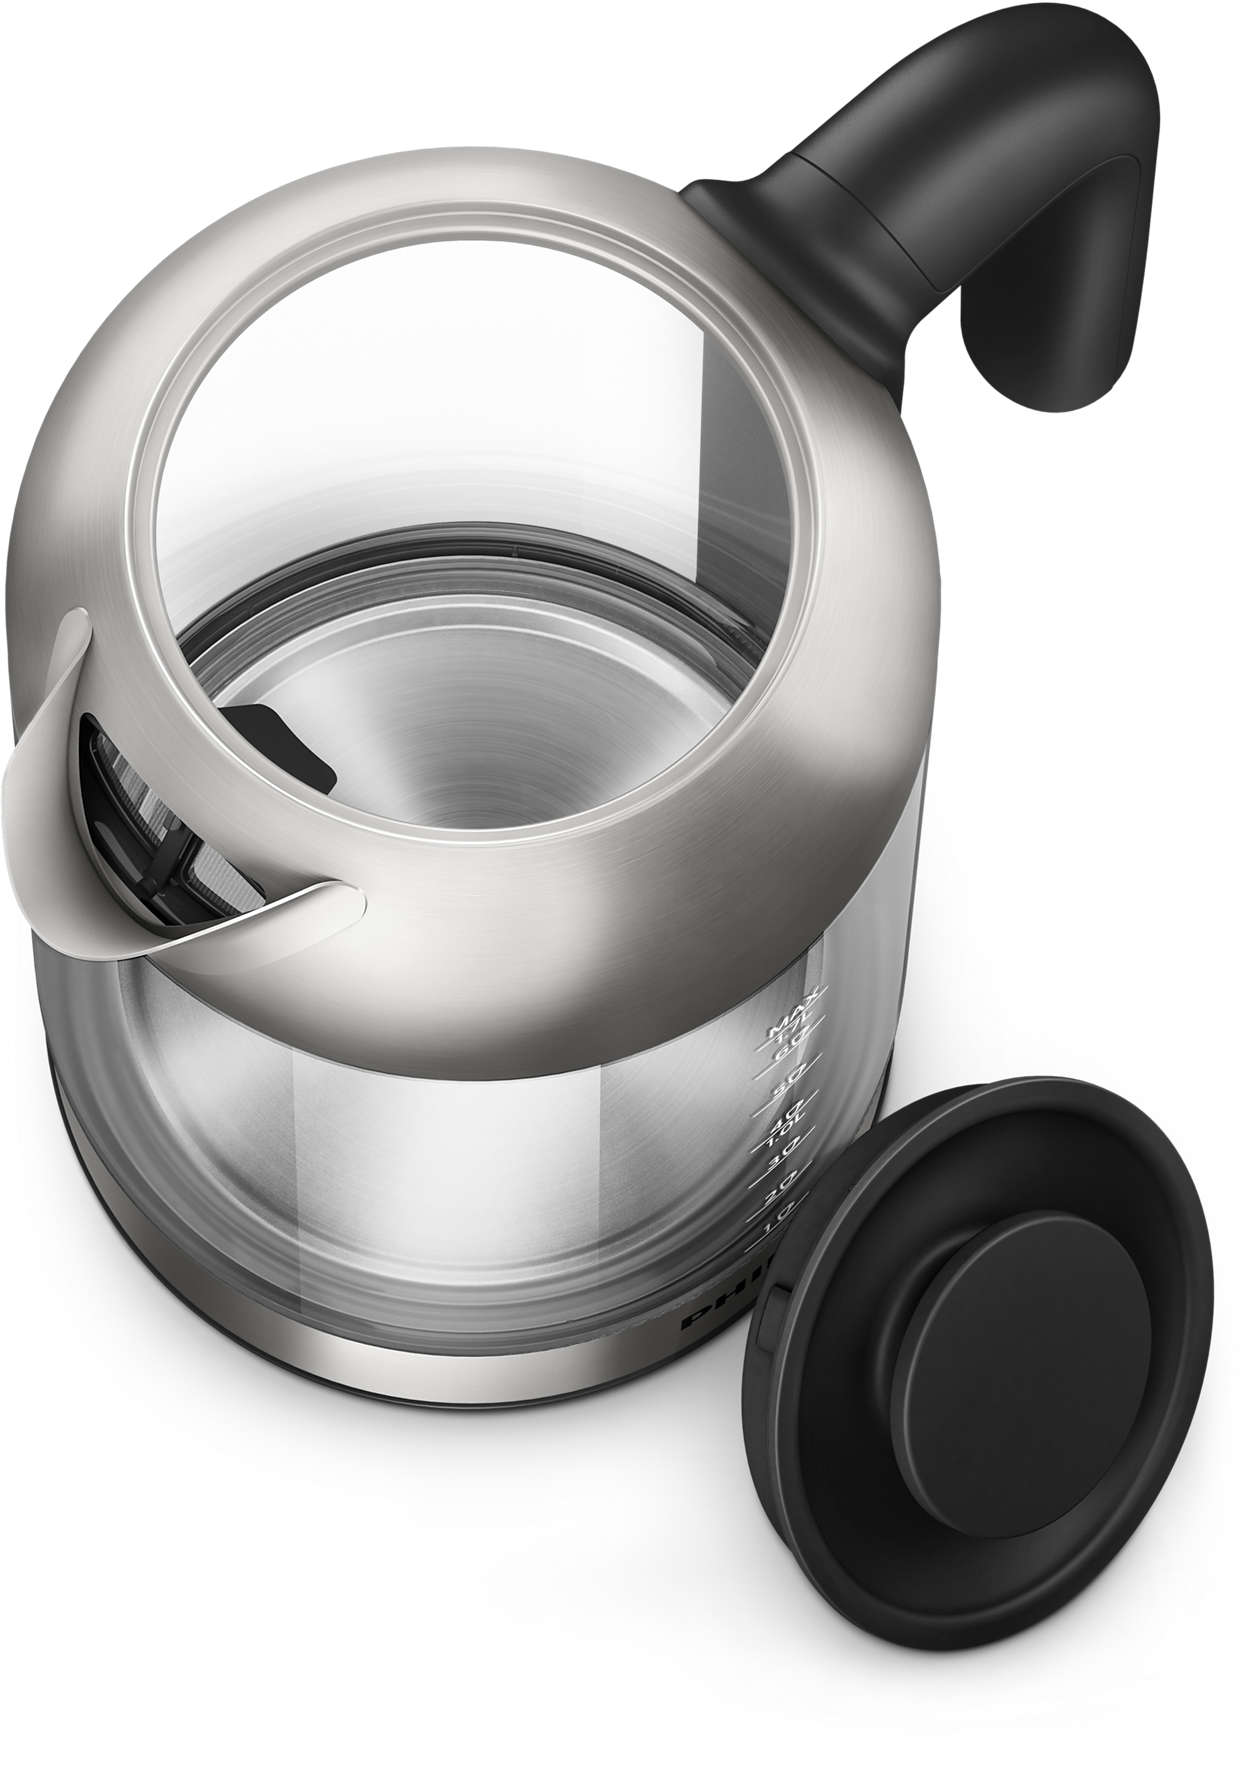 Series 5000 Glass kettle HD9339/81 | Philips